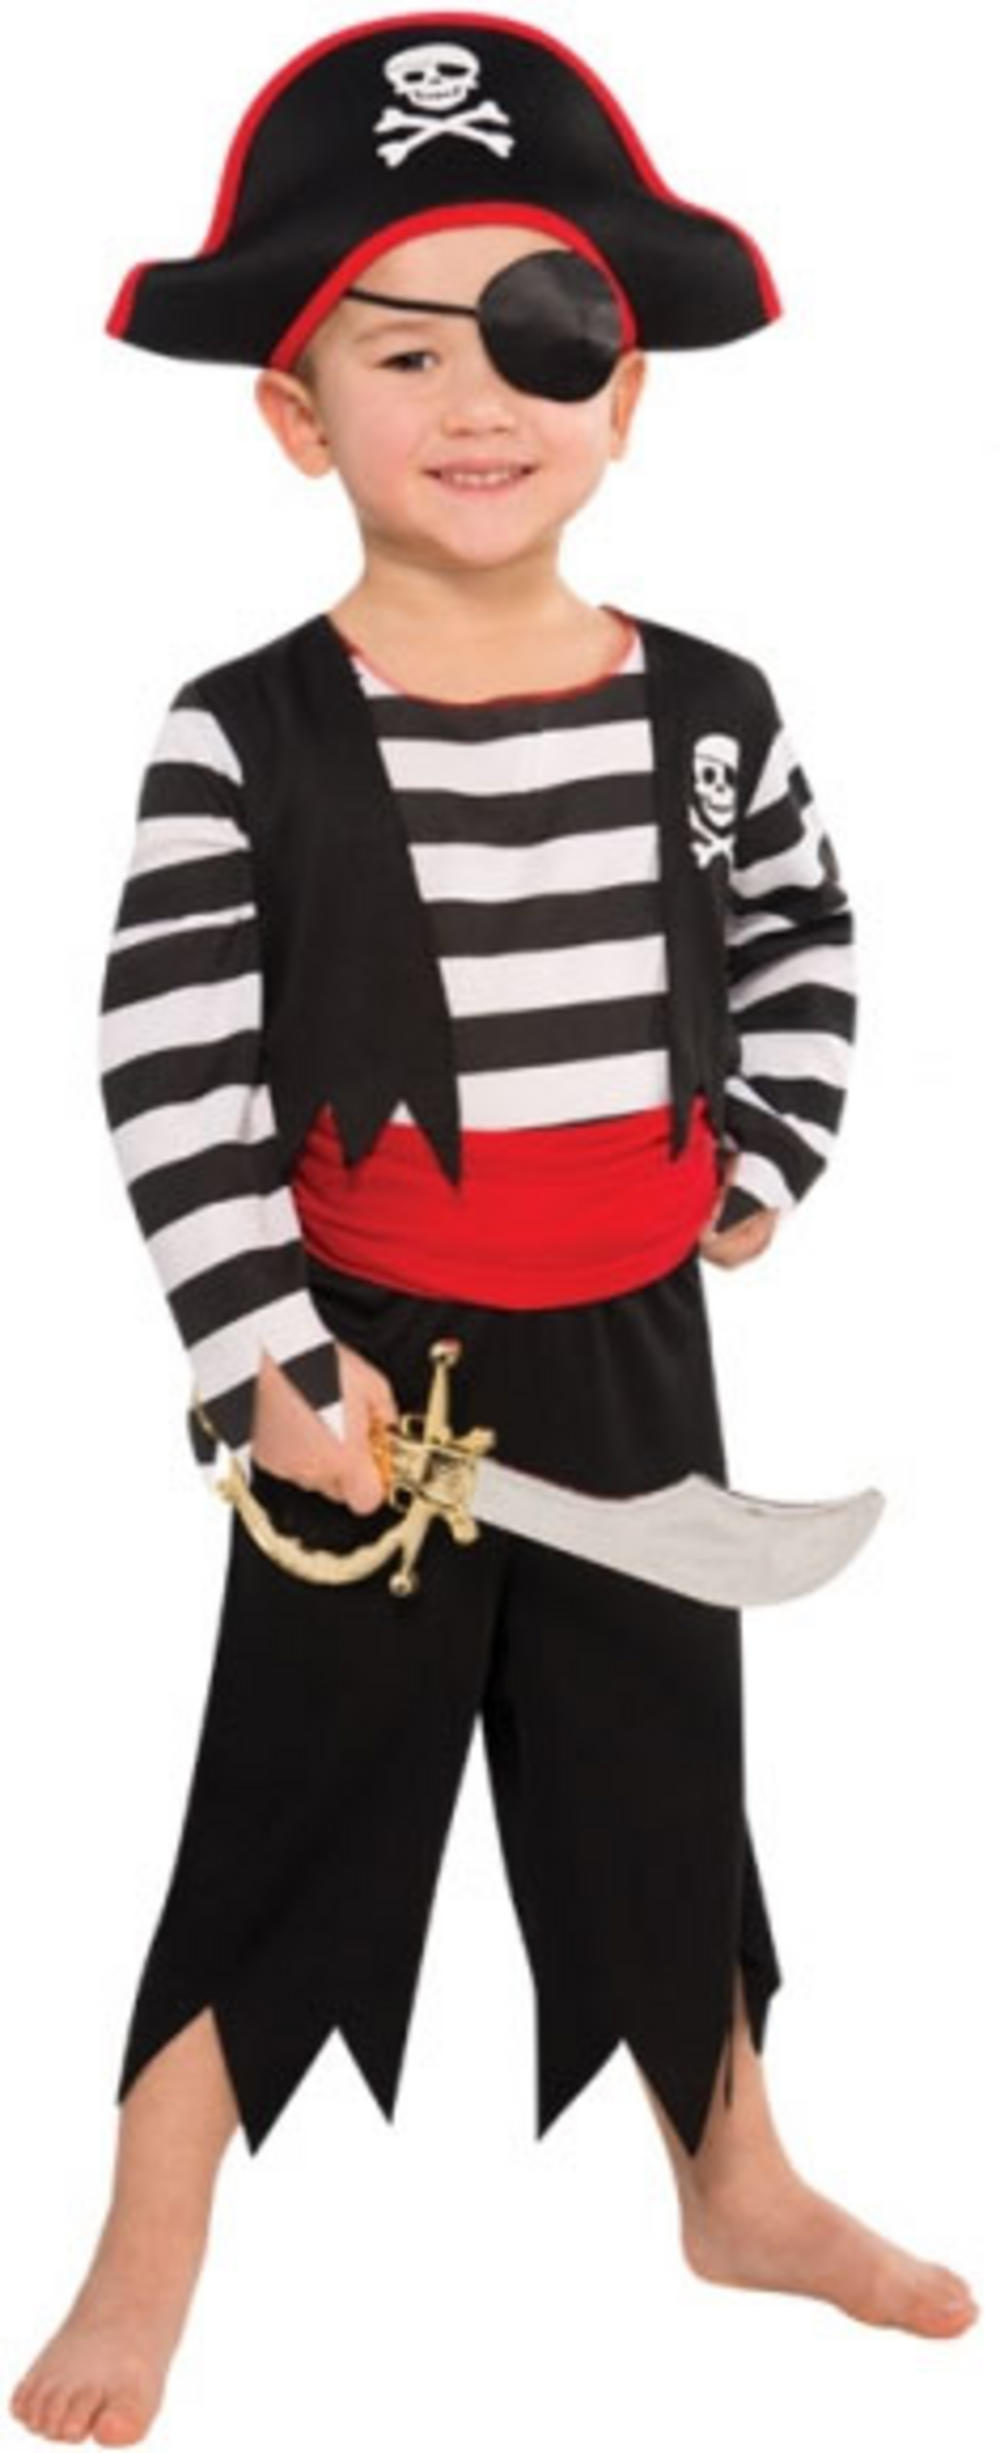 Deckhand Pirate Costume  sc 1 st  Mega Fancy Dress & Deckhand Pirate Costume | Pirate Fancy Dress Costumes | Mega Fancy Dress